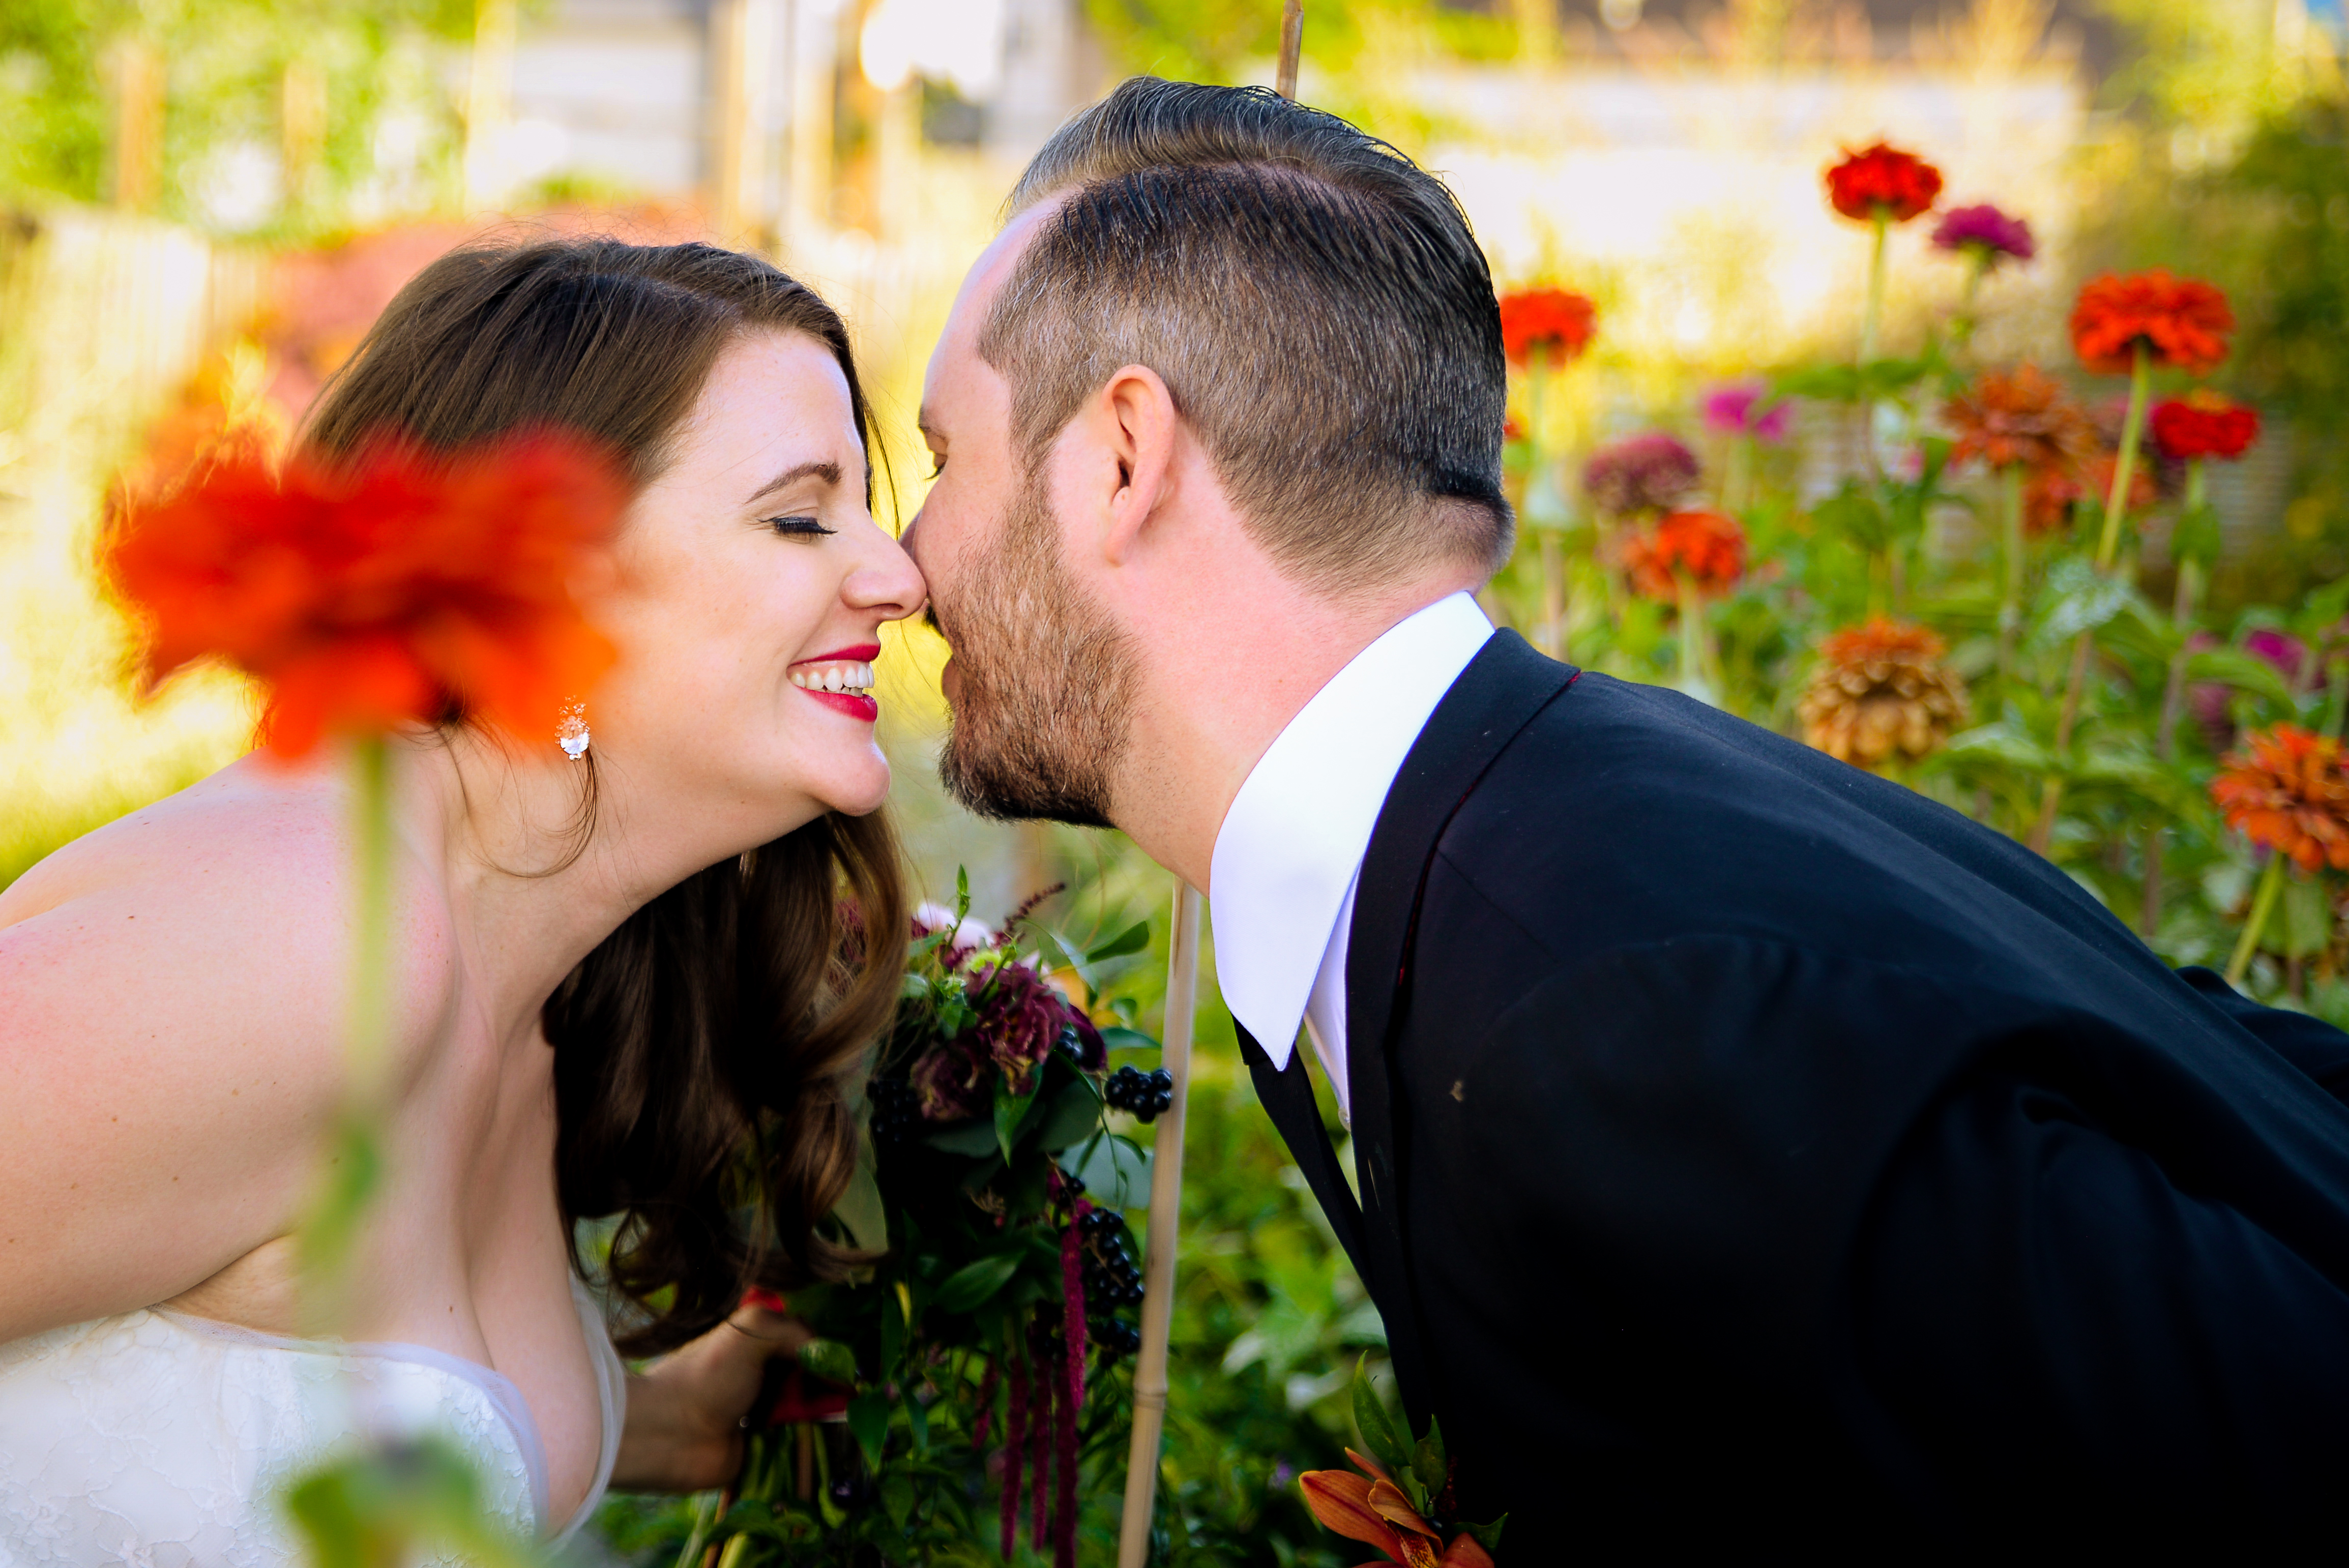 Bride and groom laughing in flowers